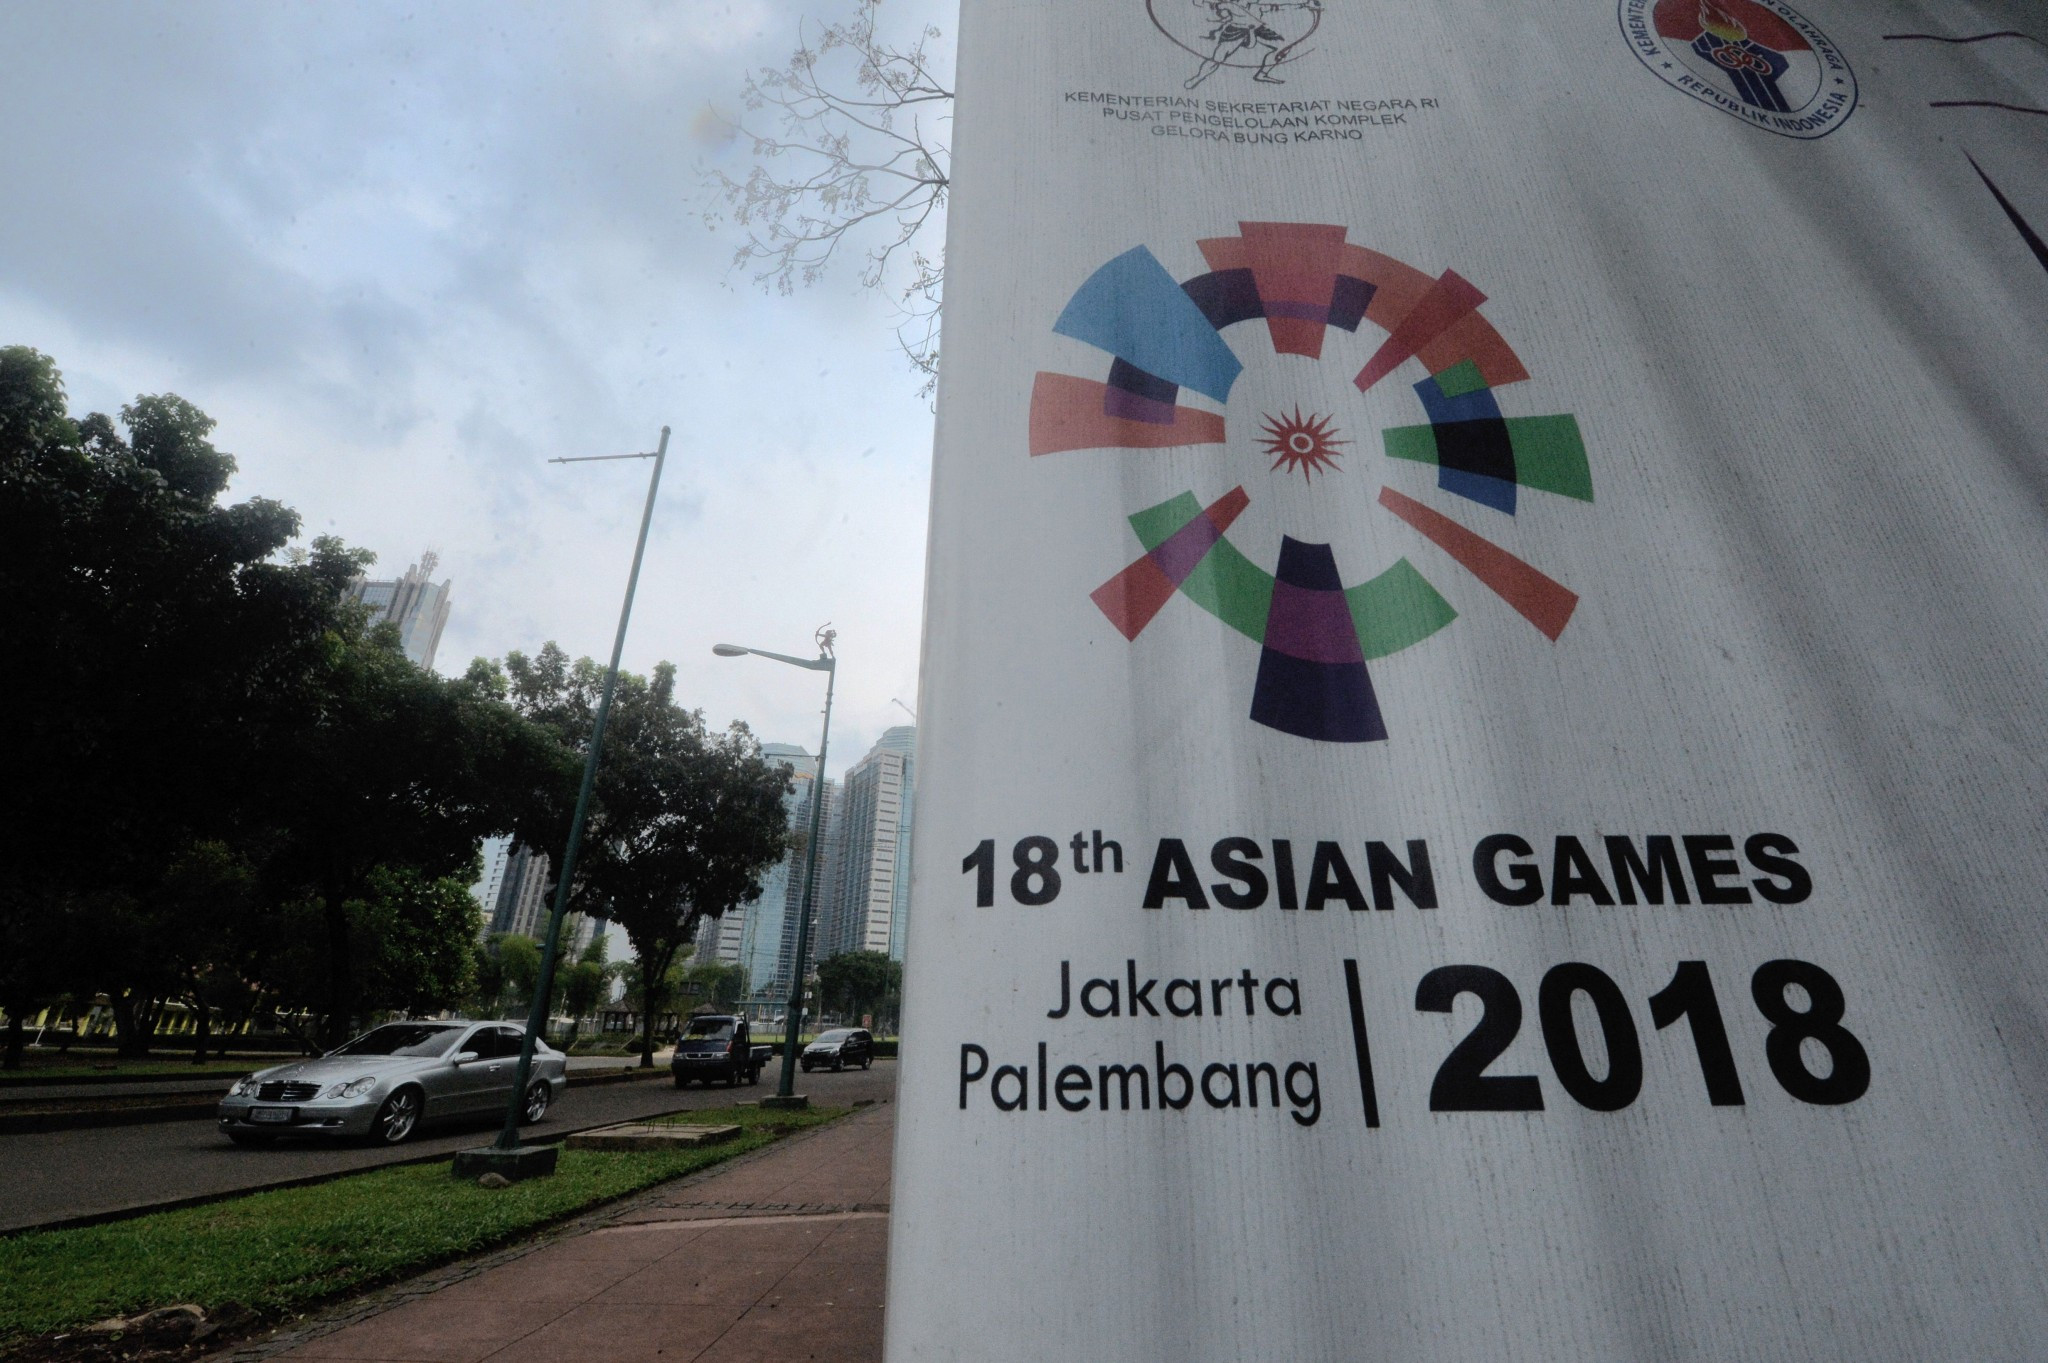 Preparations are continuing to the 2018 Asian Games in Jakarta and Palembang ©Getty Images